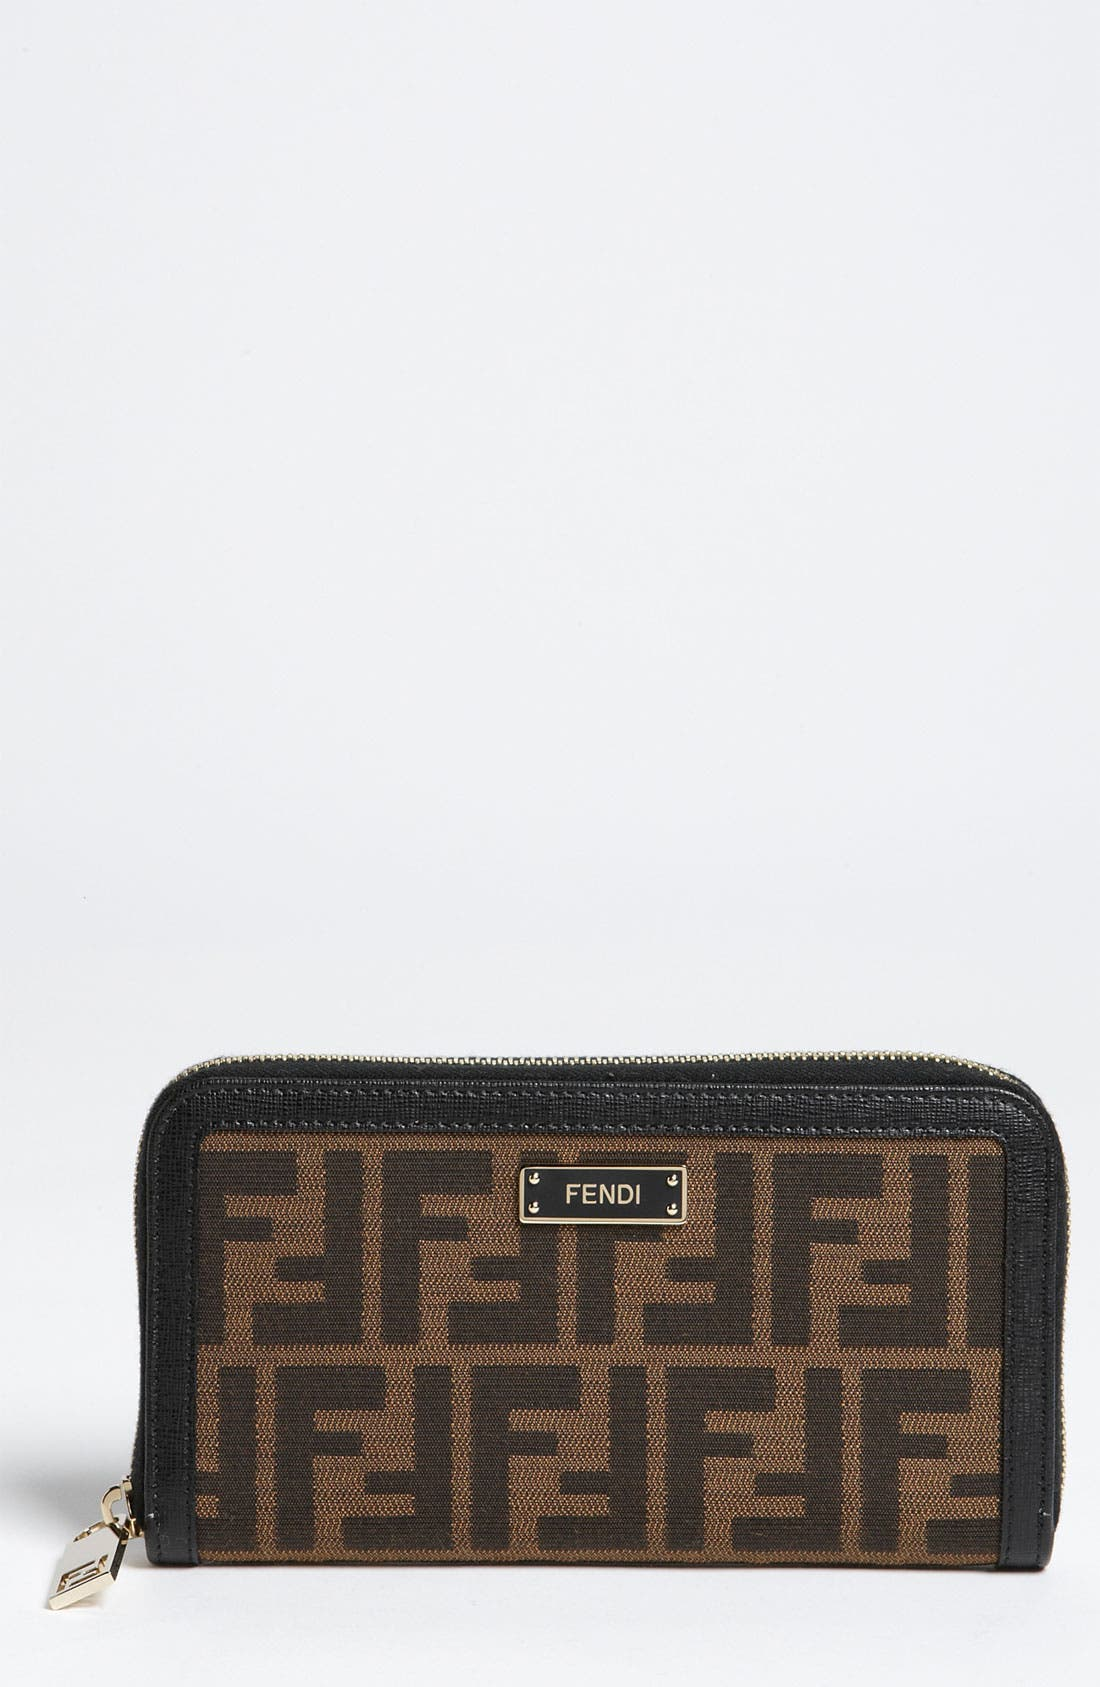 Main Image - Fendi 'Zucca - Color' Zip Around Wallet